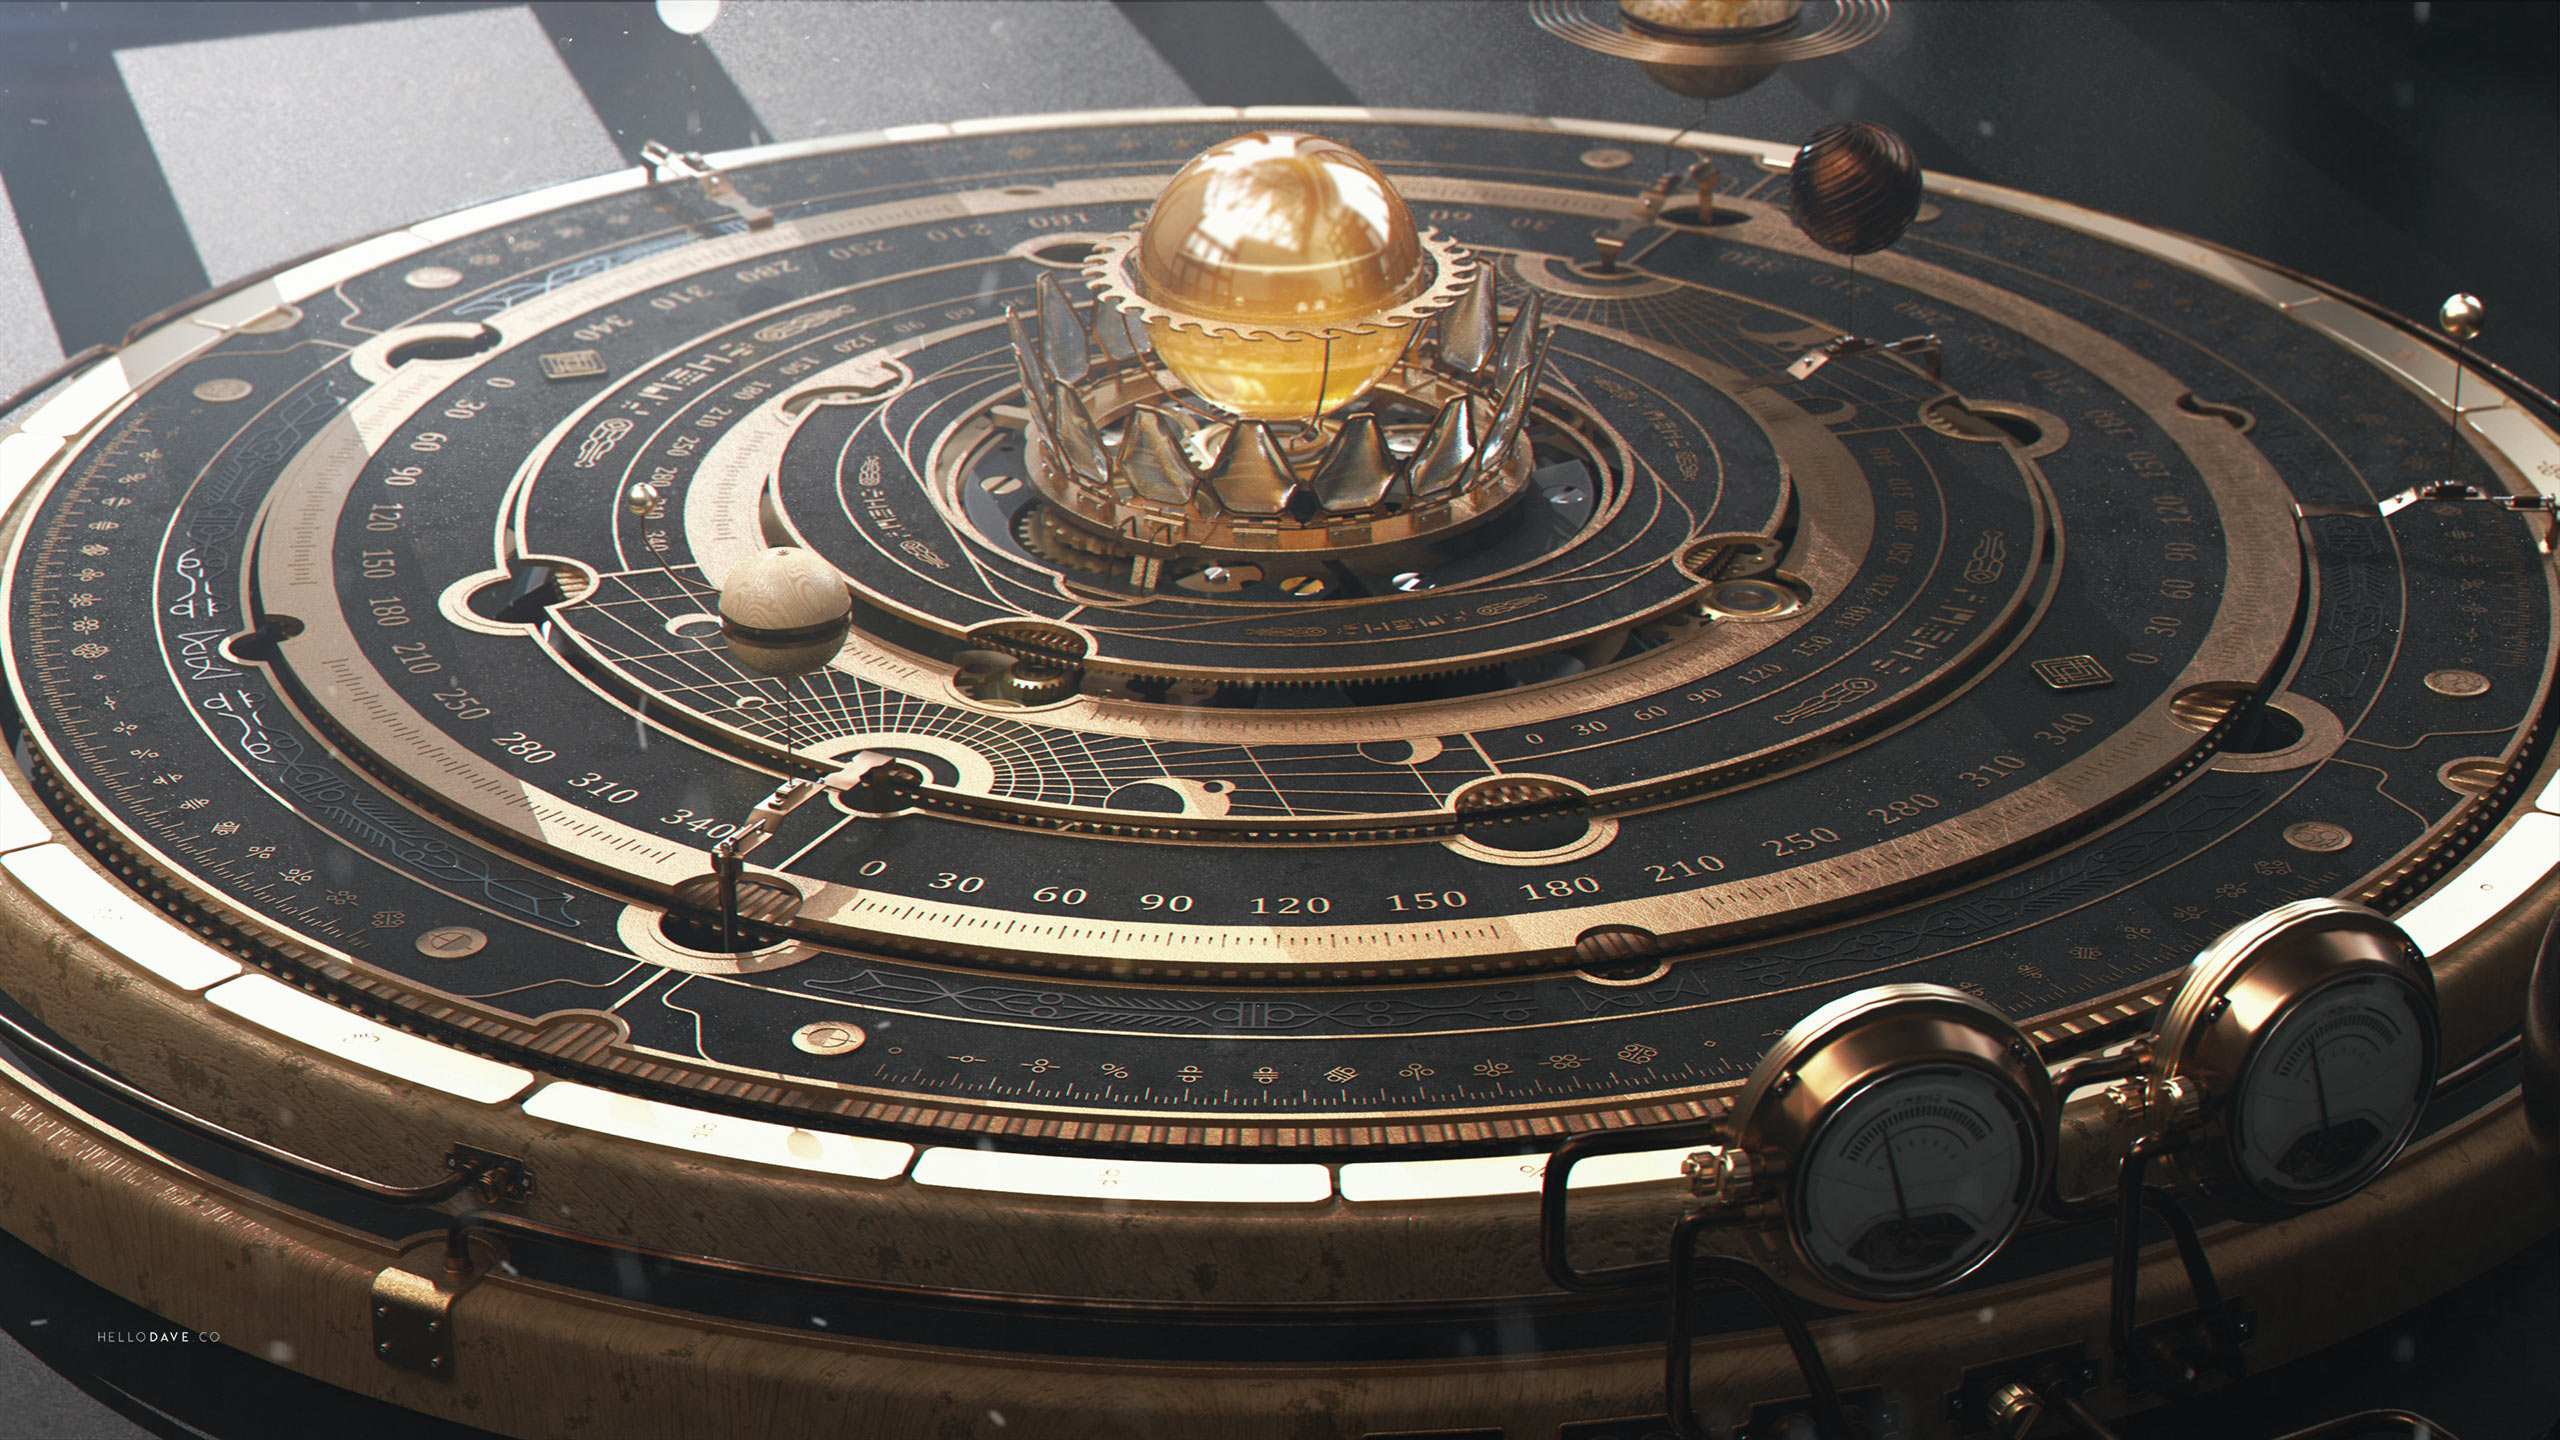 Steampunk_table_astrolabe_06_2K